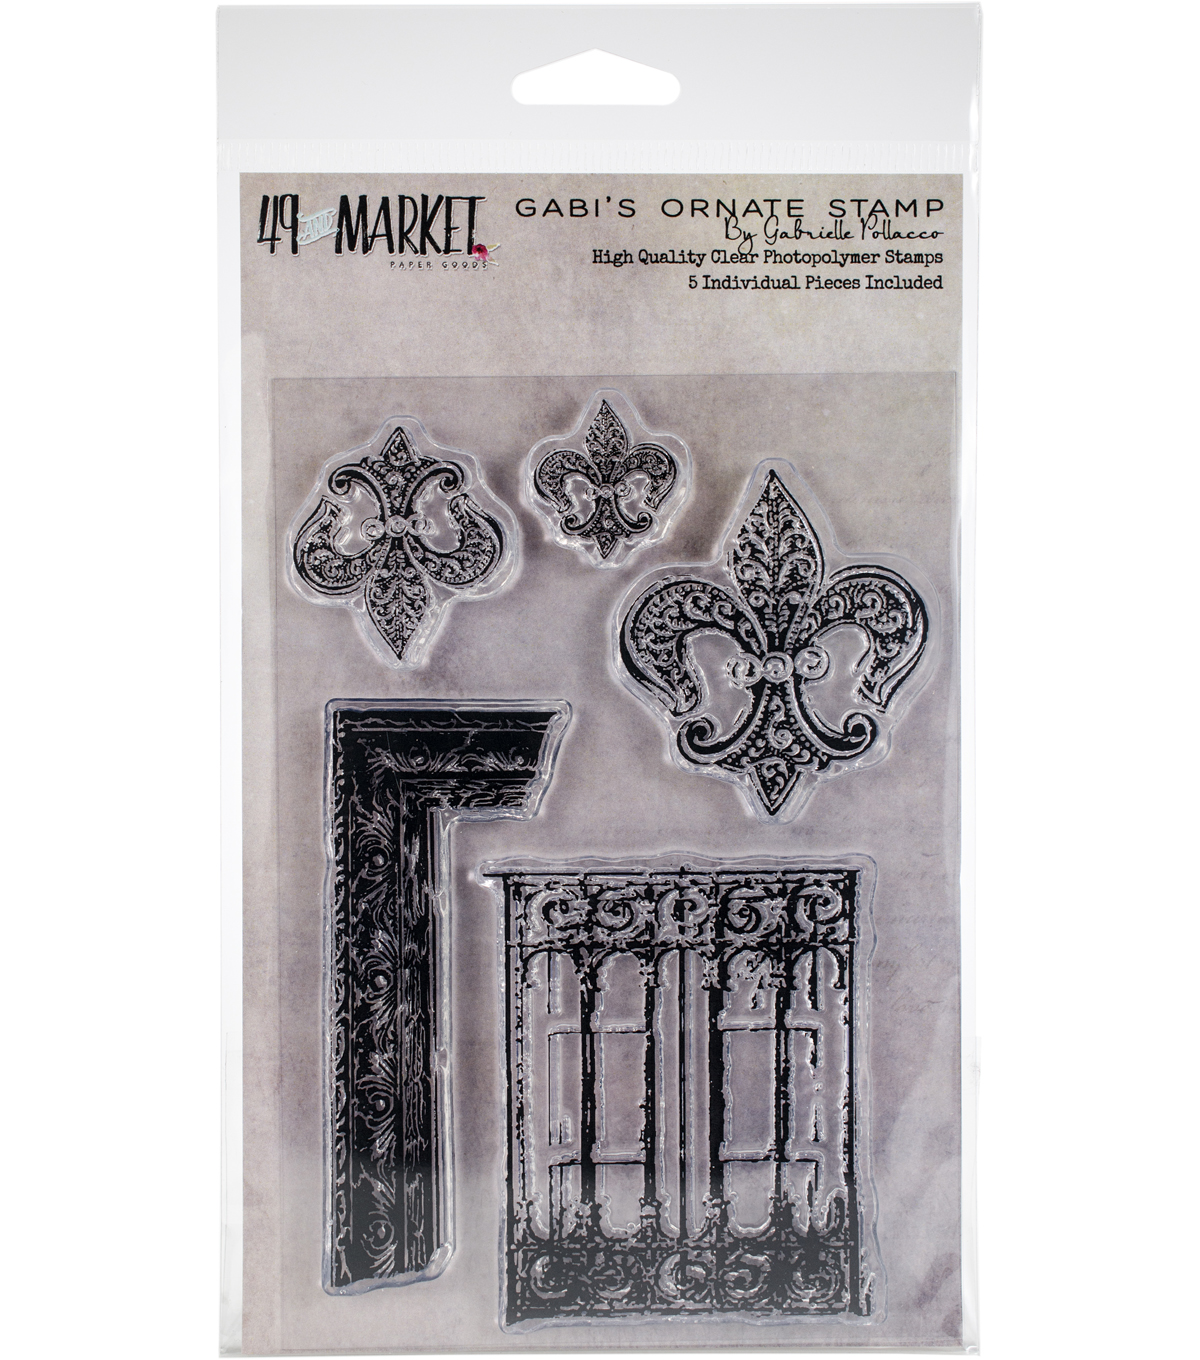 49 And Market Gabrielle Pollacco Clear Photopolymer Stamp-Gabi\u0027s Ornate